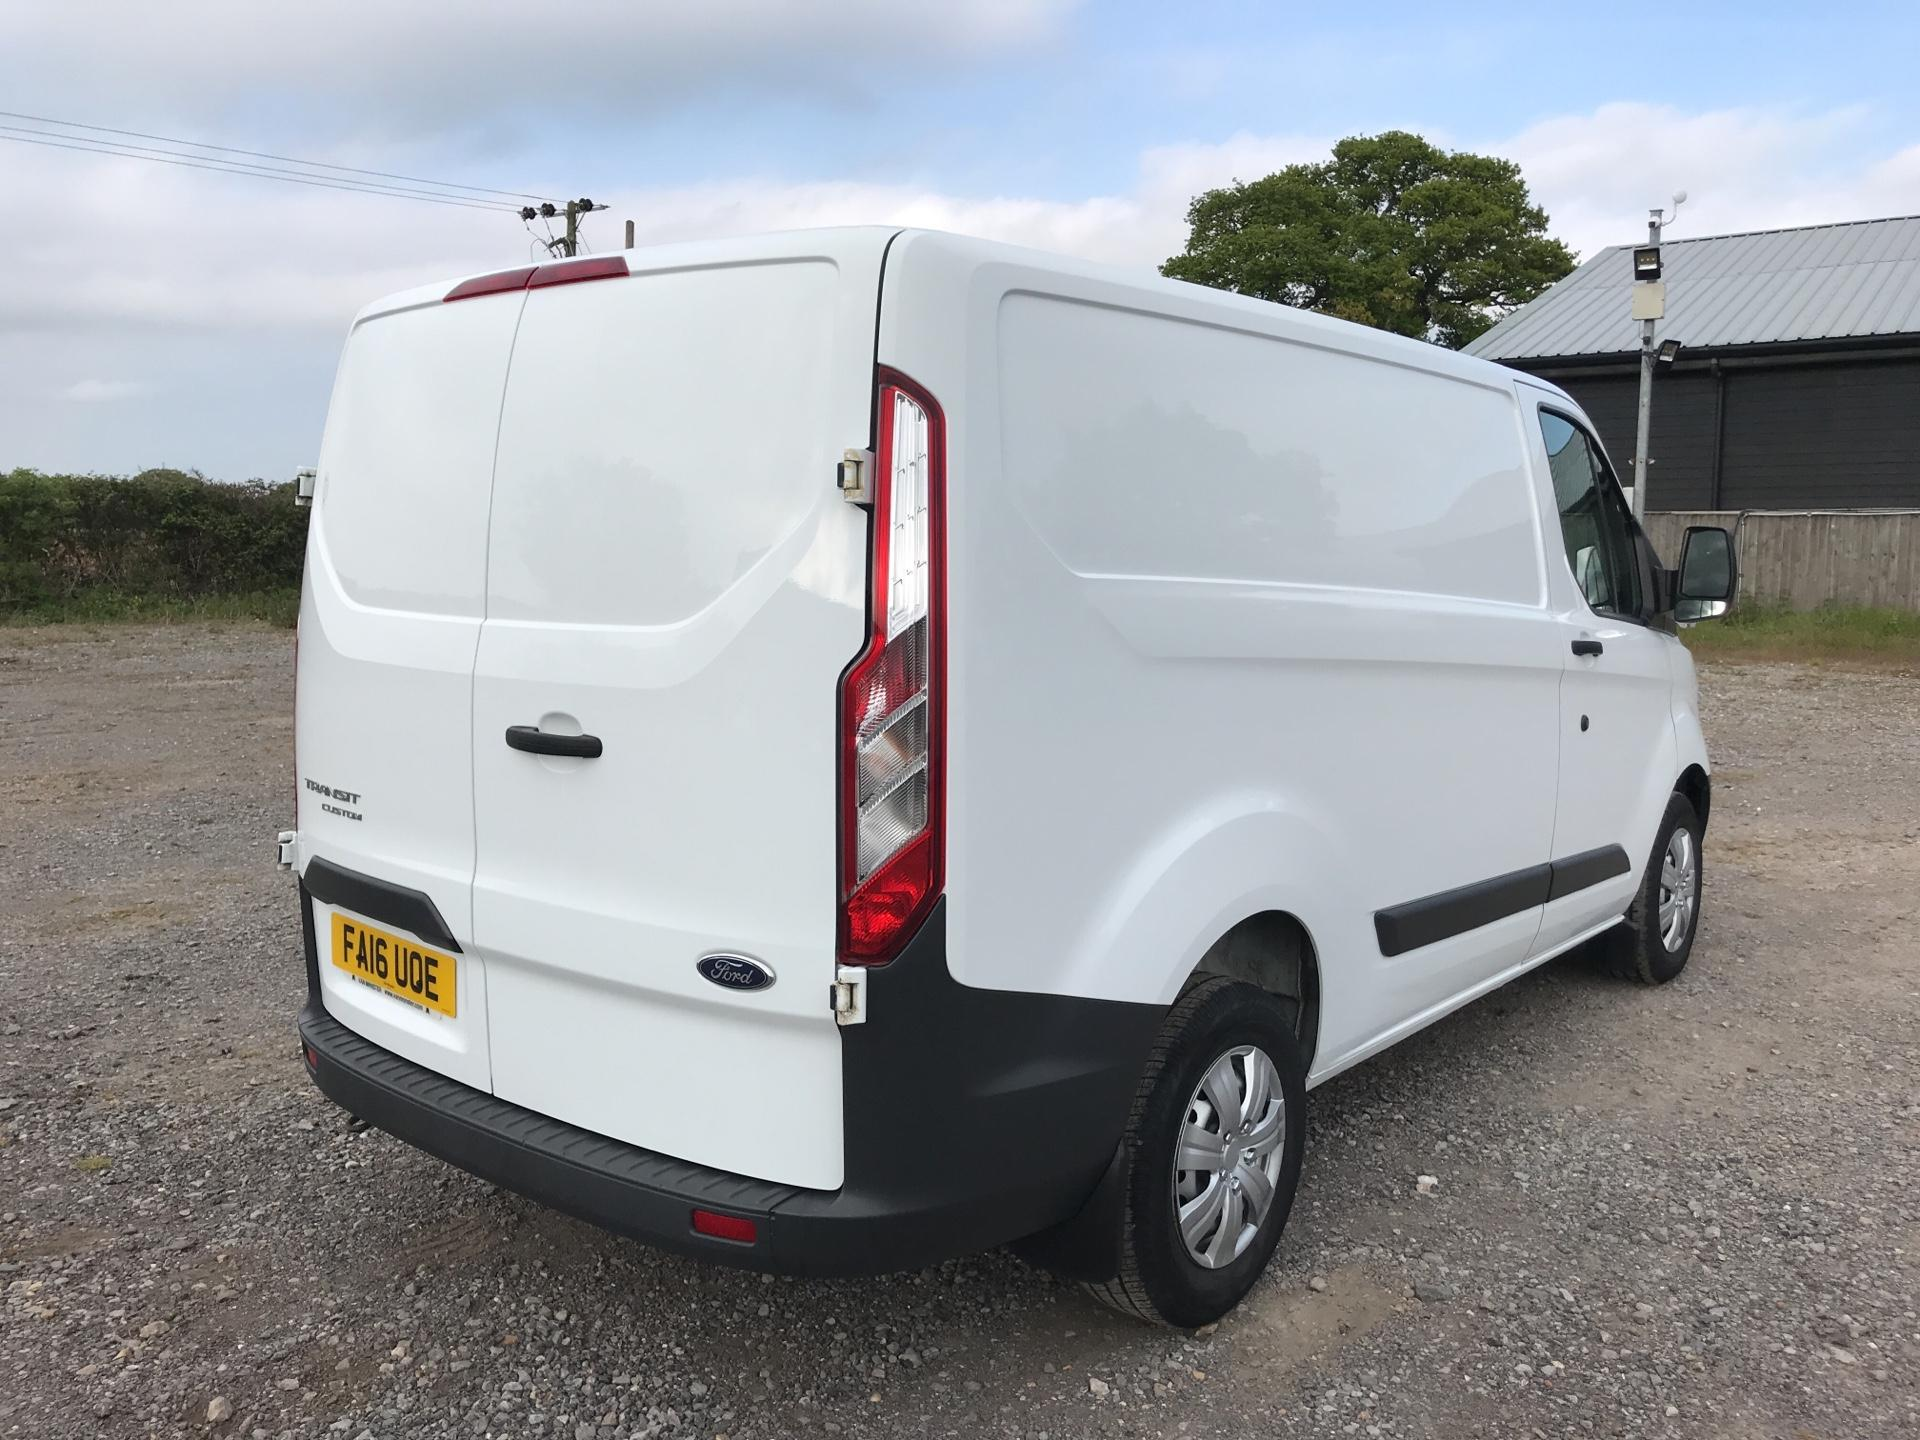 2016 Ford Transit Custom 290 L1 DIESEL FWD 2.2 TDCI 100PS LOW ROOF VAN EURO 5 (FA16UOE) Thumbnail 3